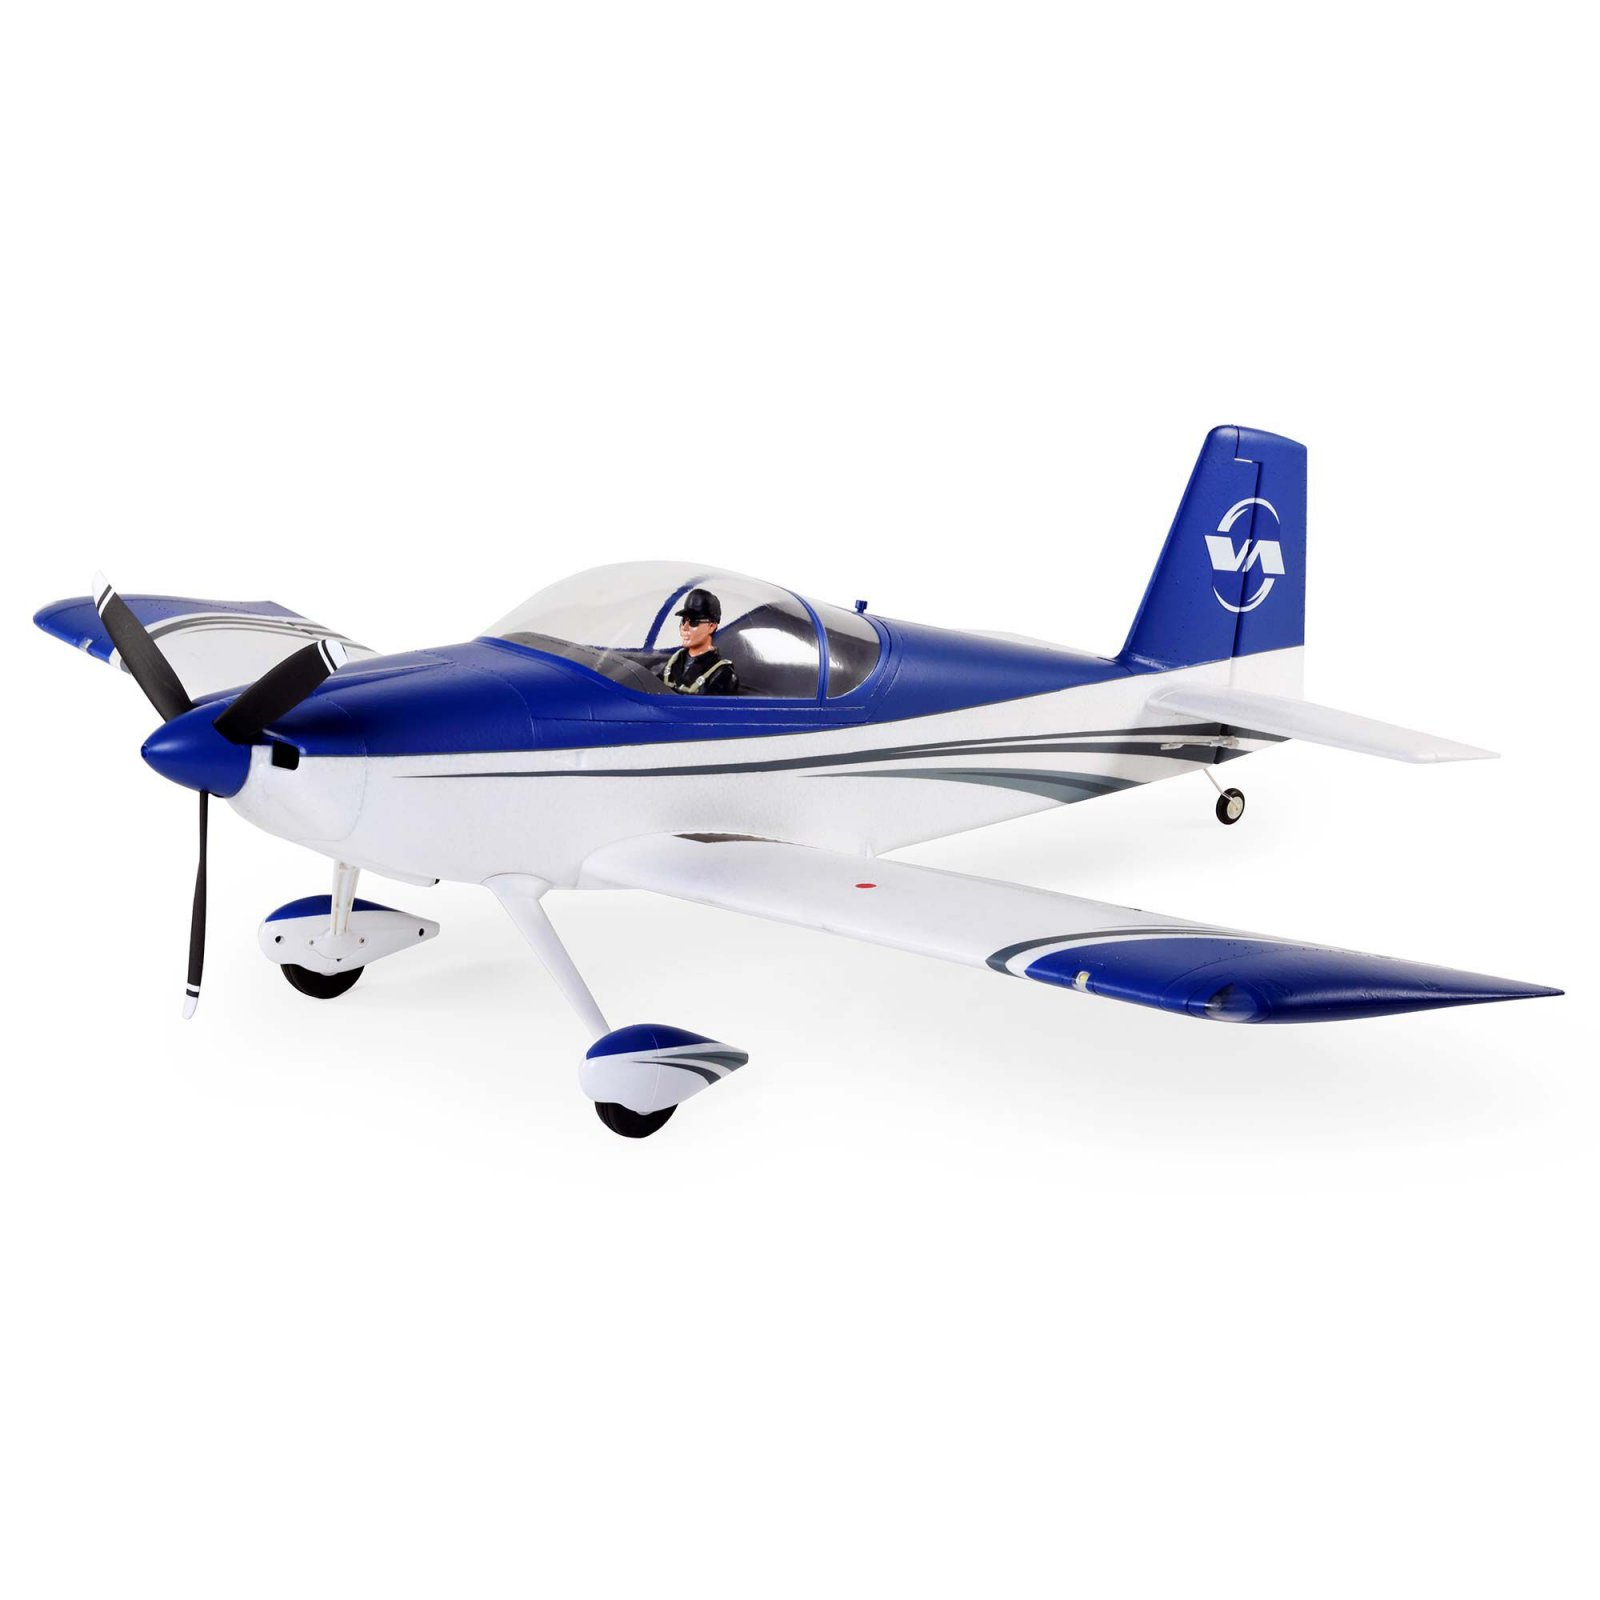 RV-7 Sport 1.1m EP BNF-B w/ SAFE Select/AS3X